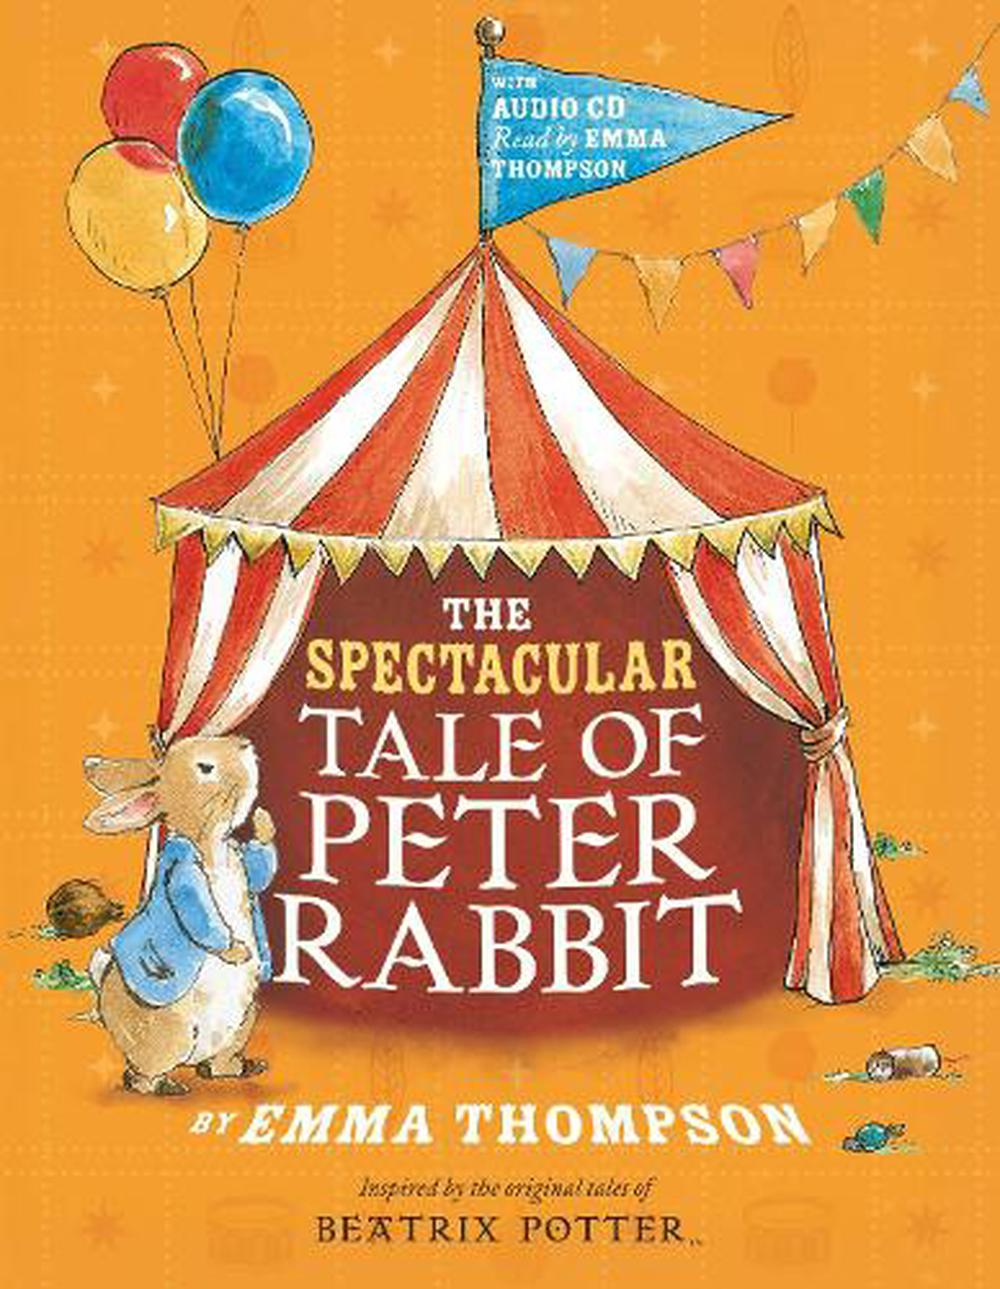 Spectacular Tale of Peter Rabbit